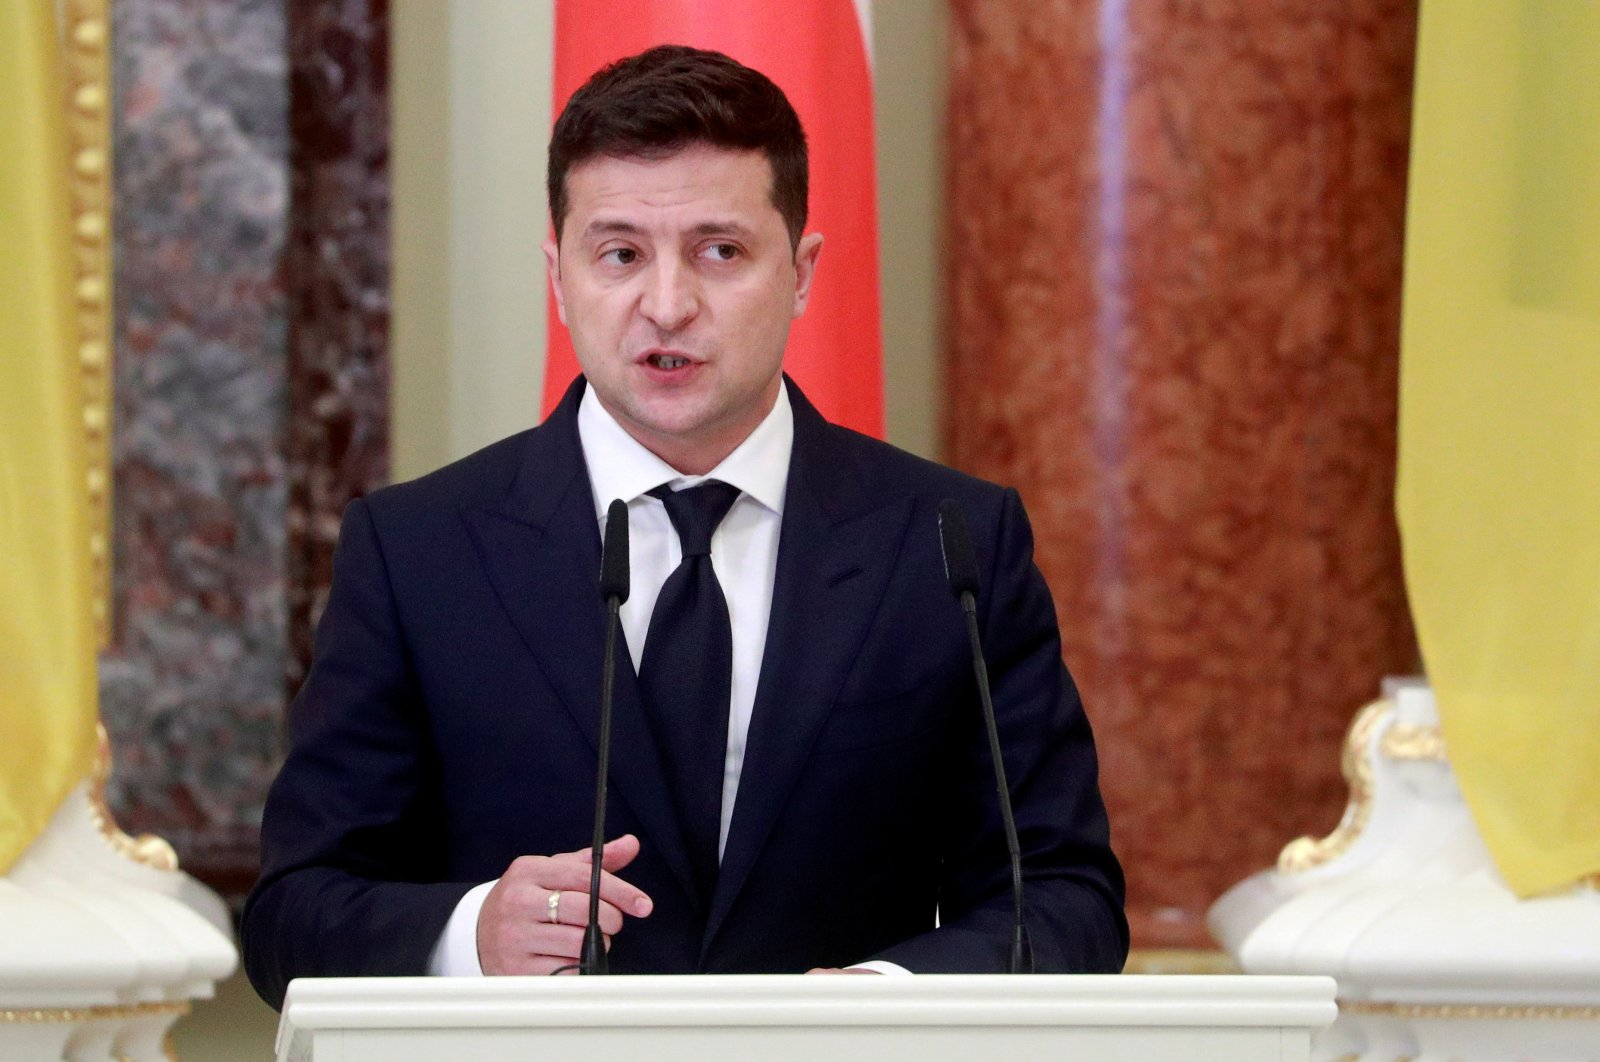 Ukrainian President Volodymyr Zelenskiy speaks during a joint news briefing with Polish President Andrzej Duda (not pictured) as they meet in Kyiv, Ukraine, Oct. 12, 2020. (Reuters Photo)